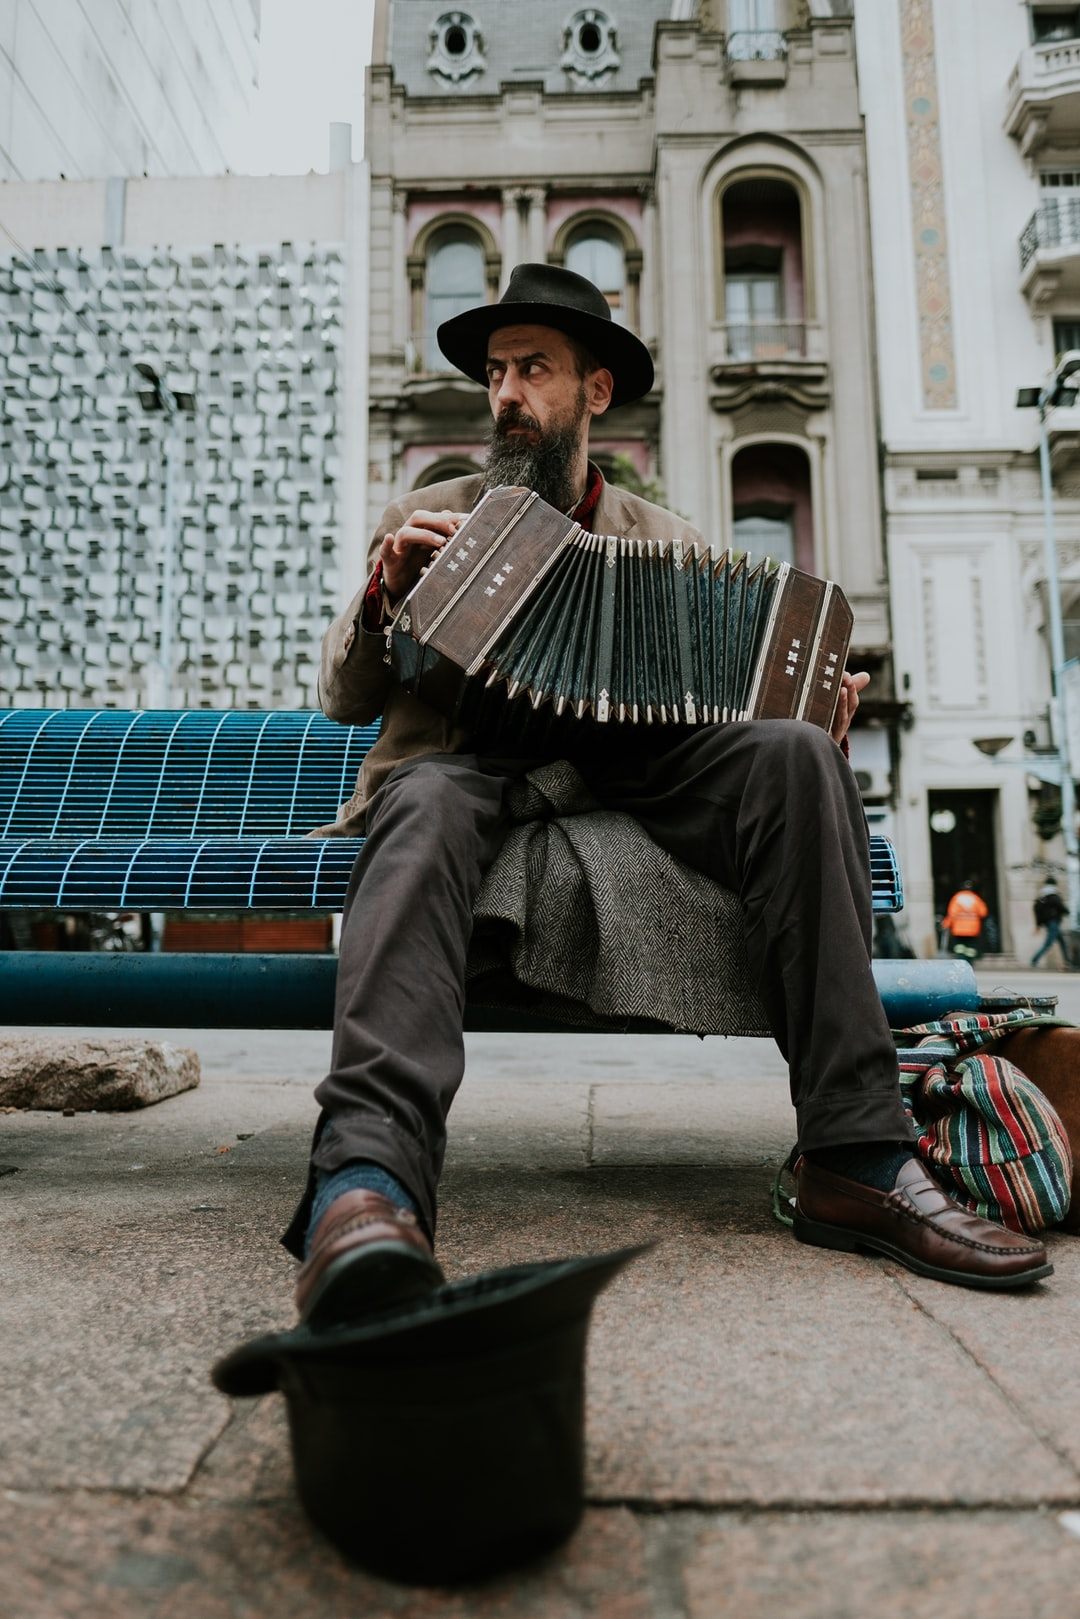 A guy playing music outside.